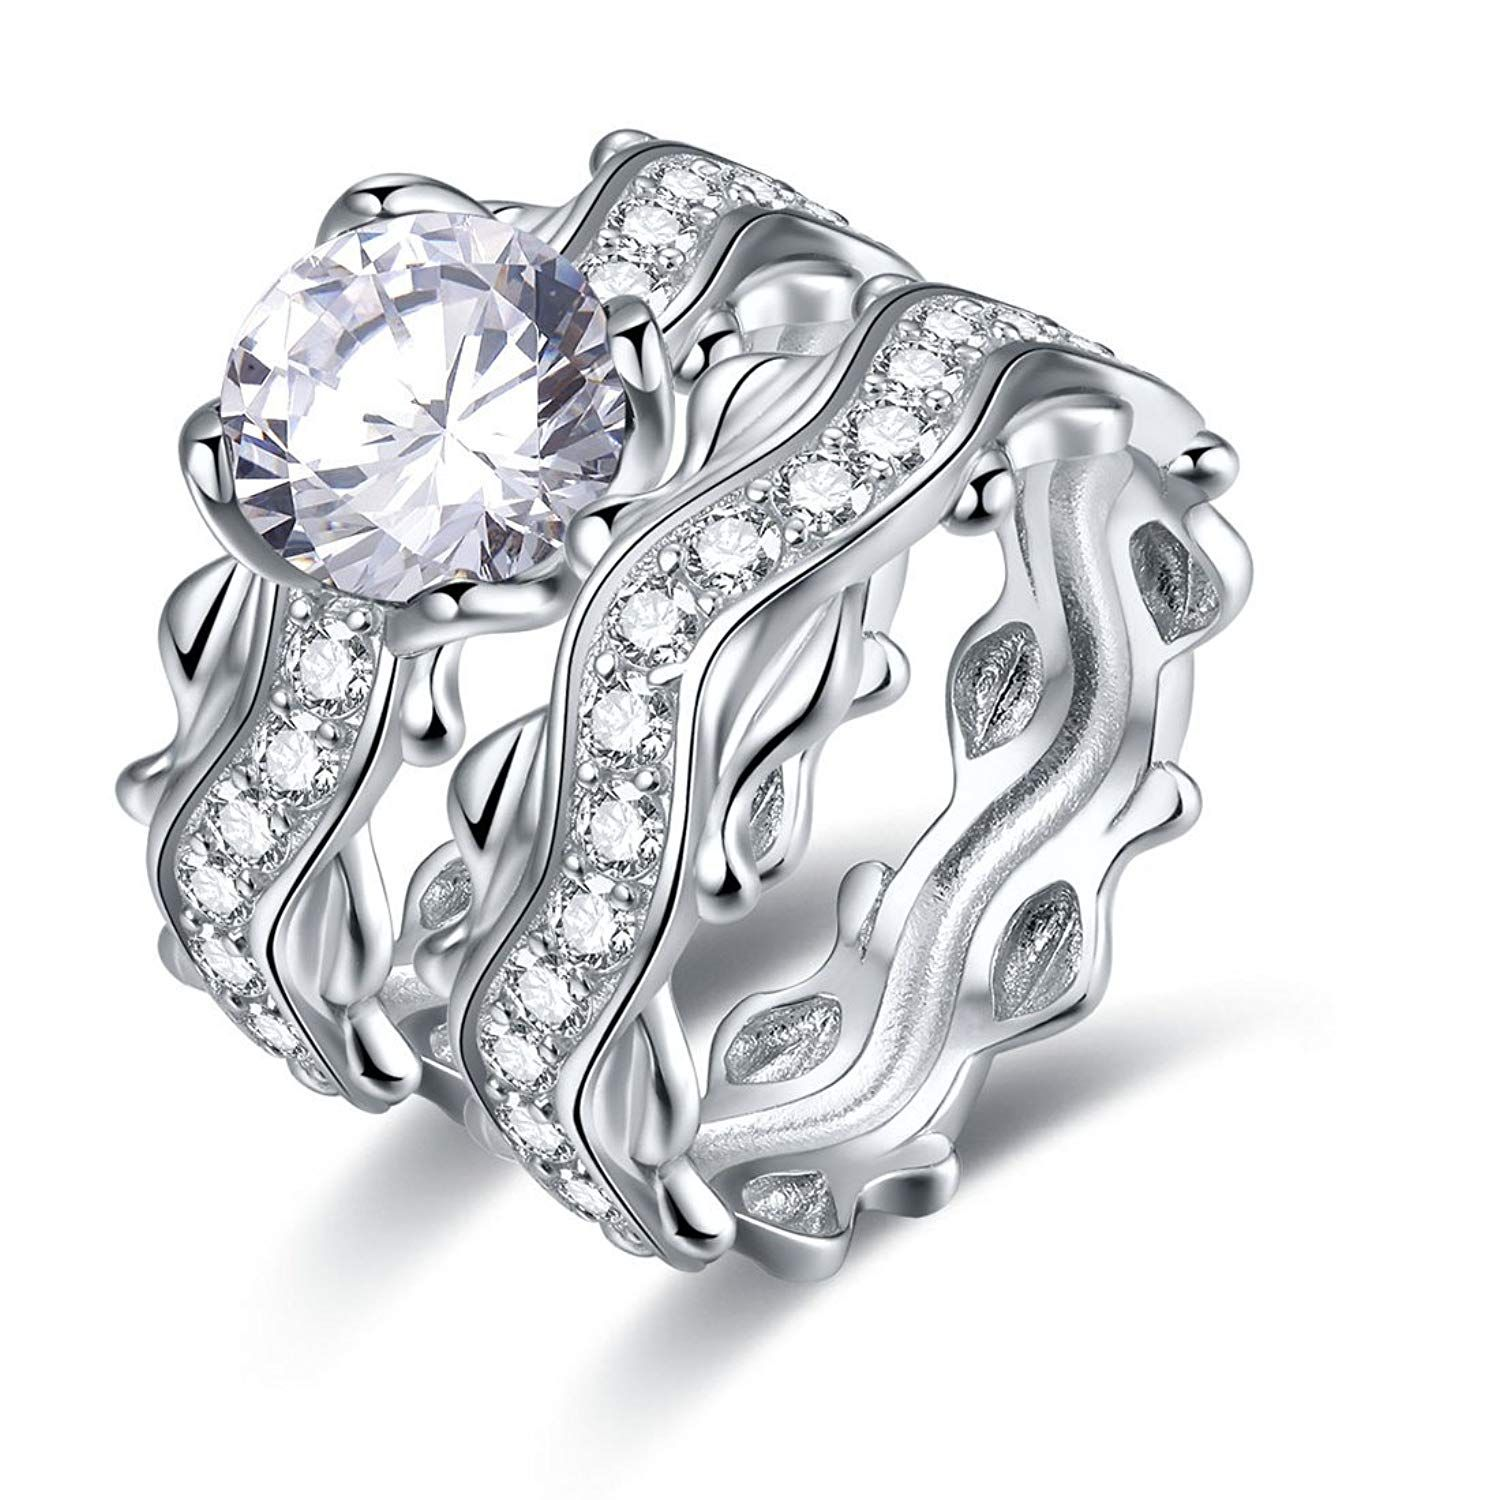 Jrose 925 Sterling Silver Cubic Zirconia Engagement Ring